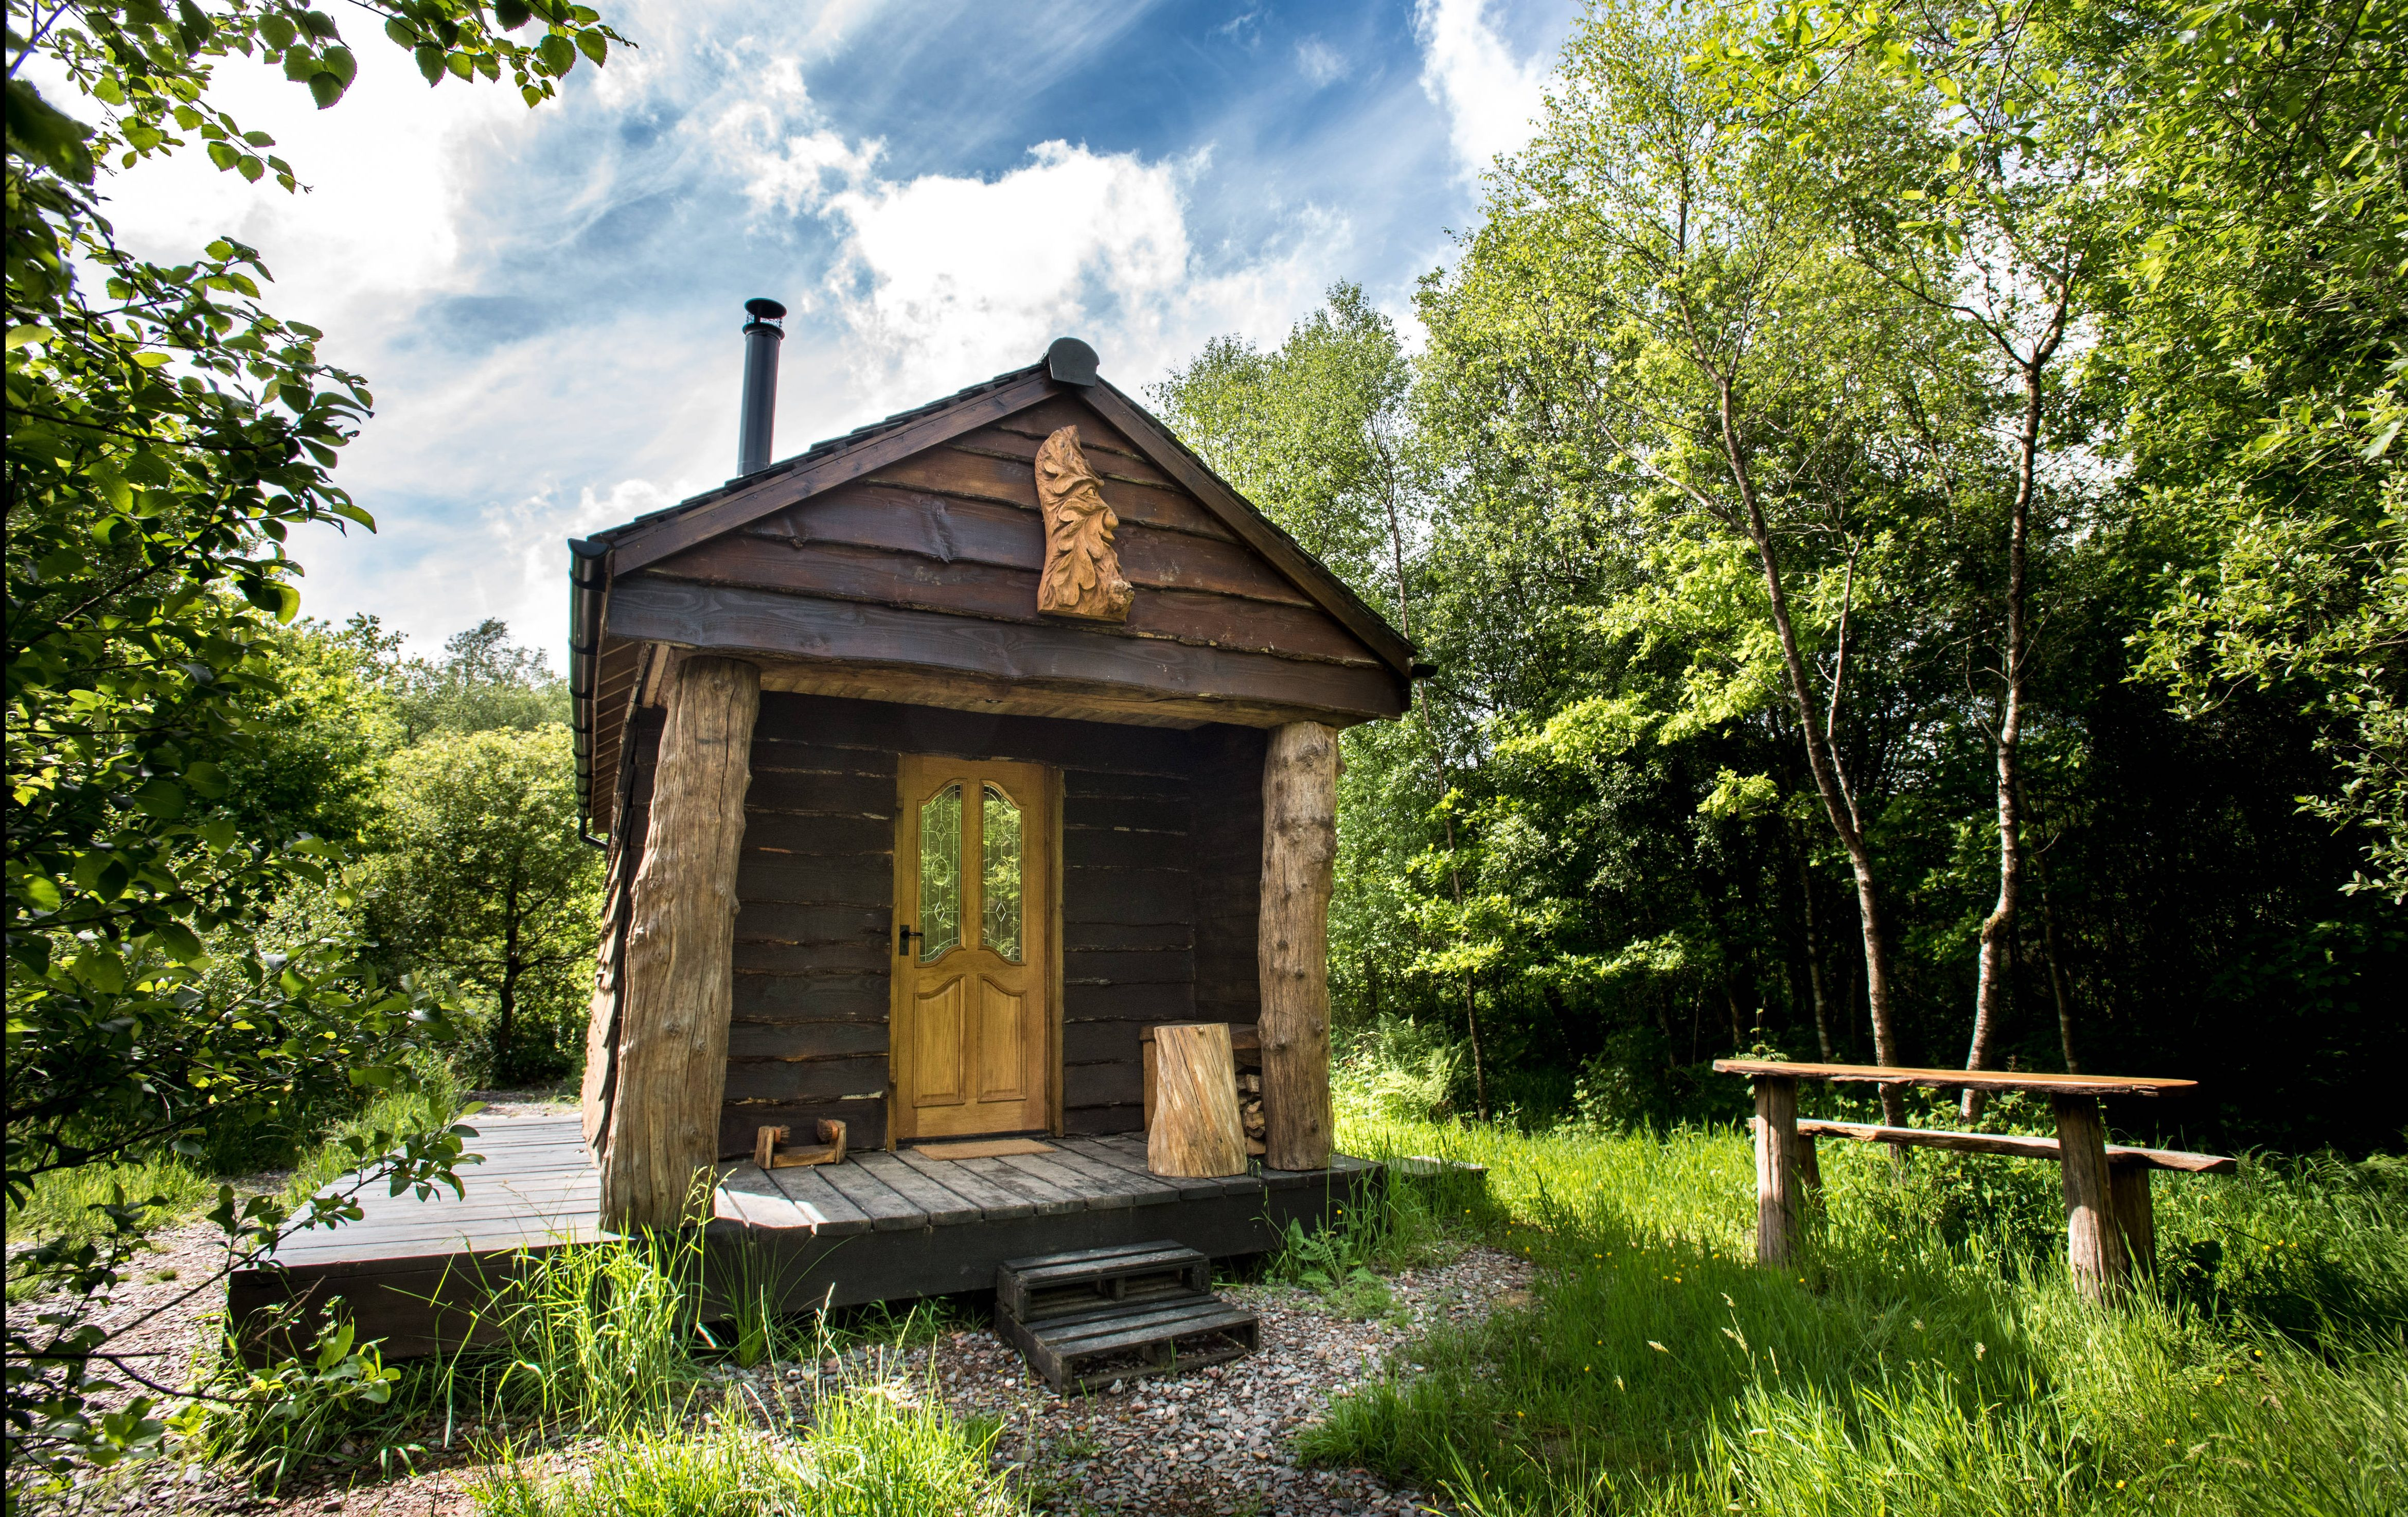 Bulworthy Project off-grid cabin